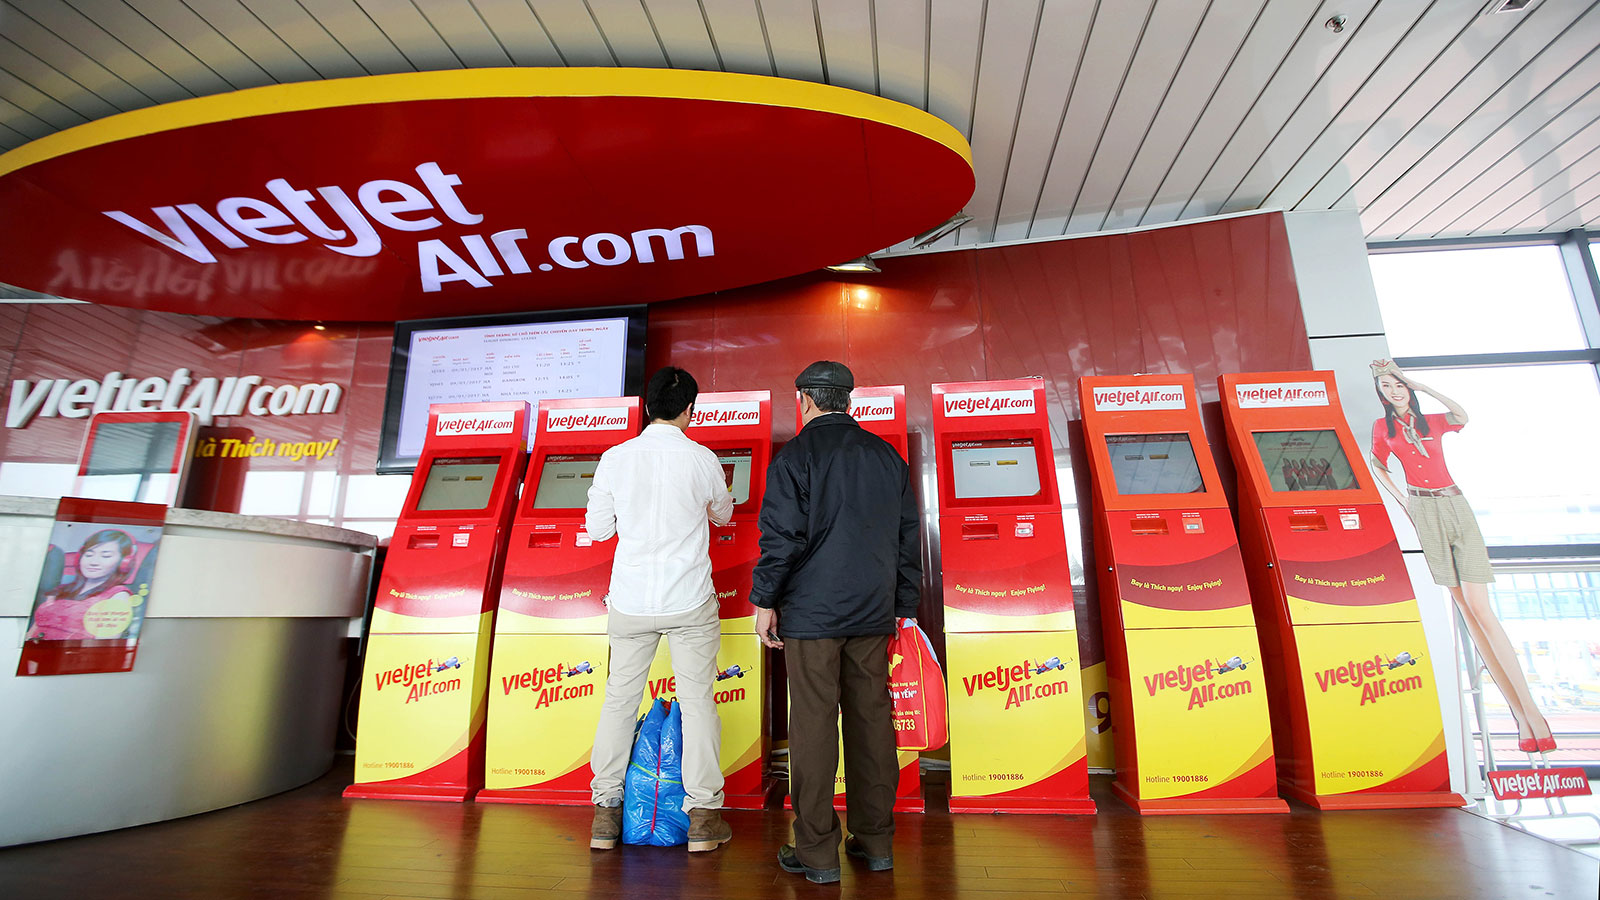 In this 2017 file photo, passengers use an automated check-in machine for VietJet Air at Noi Bai International Airport in Hanoi, Vietnam.